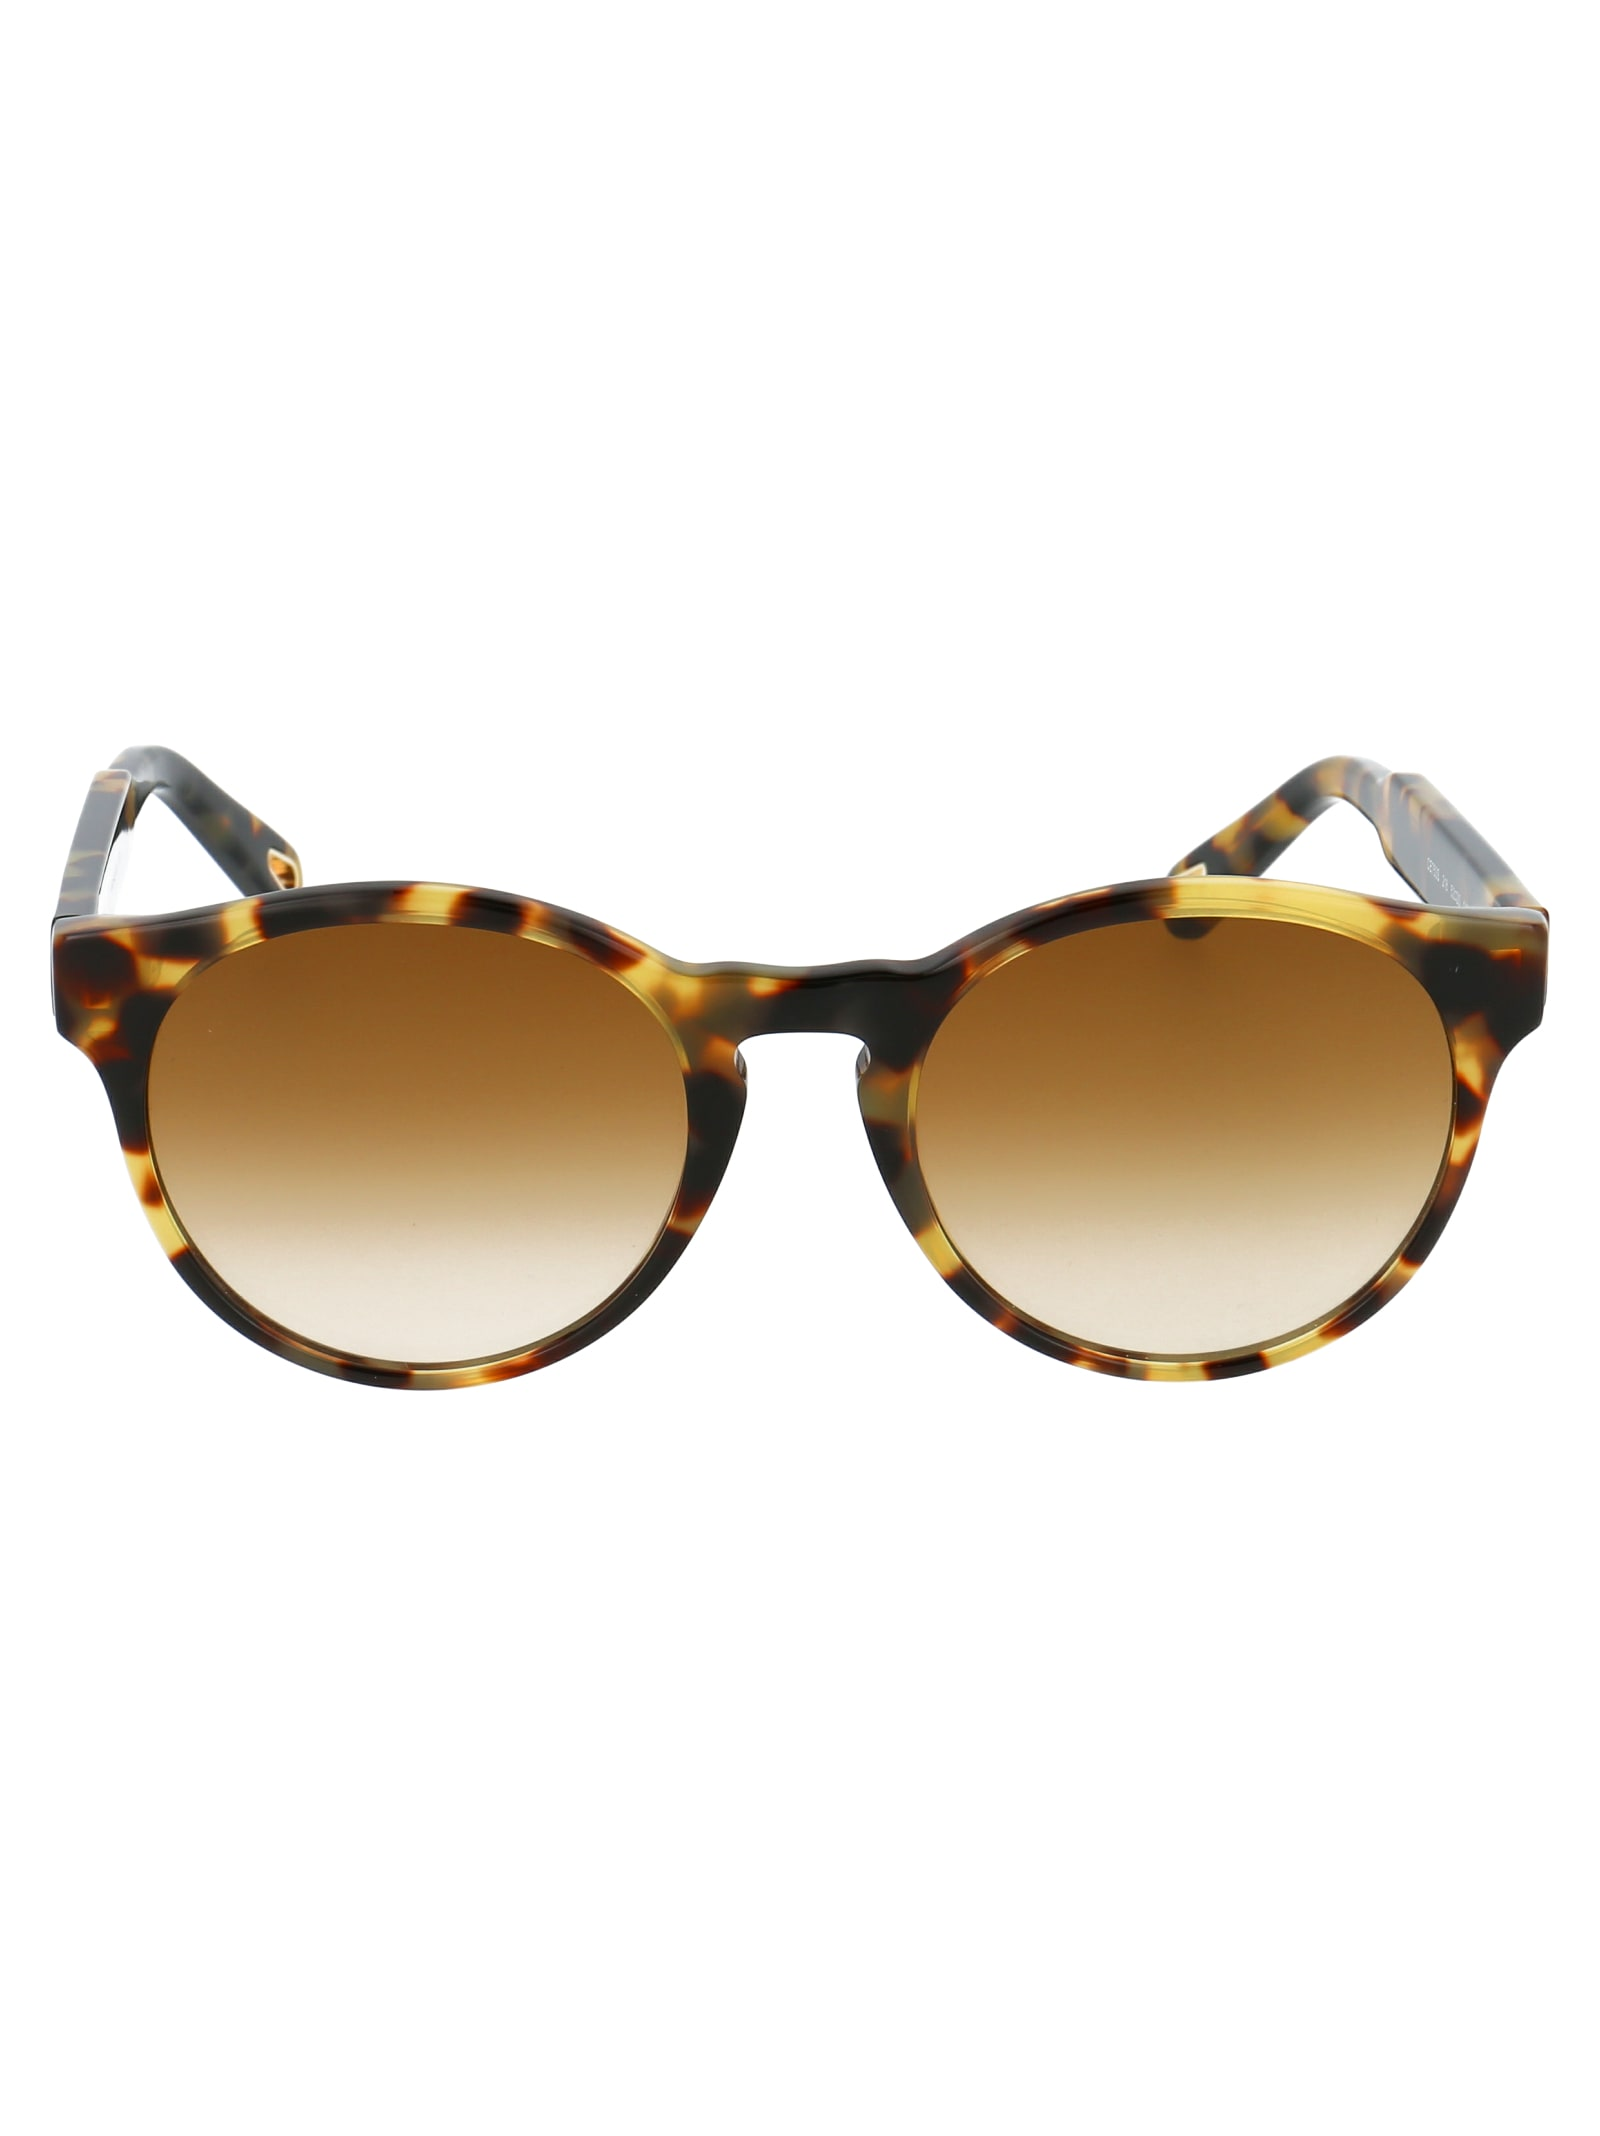 Sunglasses from ChloéComposition: Acetate